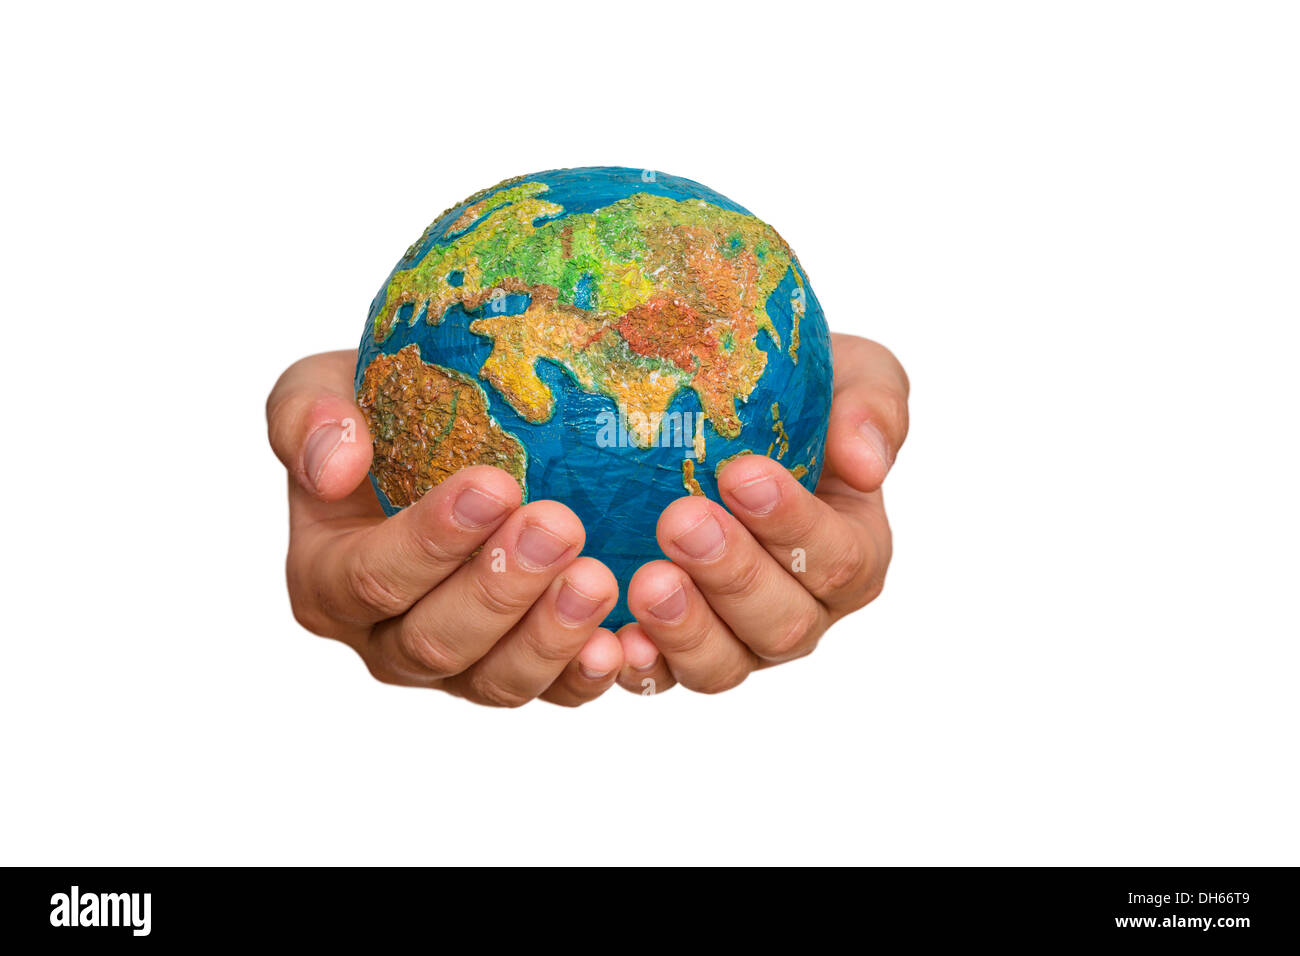 Girl's hands are holding a globe, Germany - Stock Image